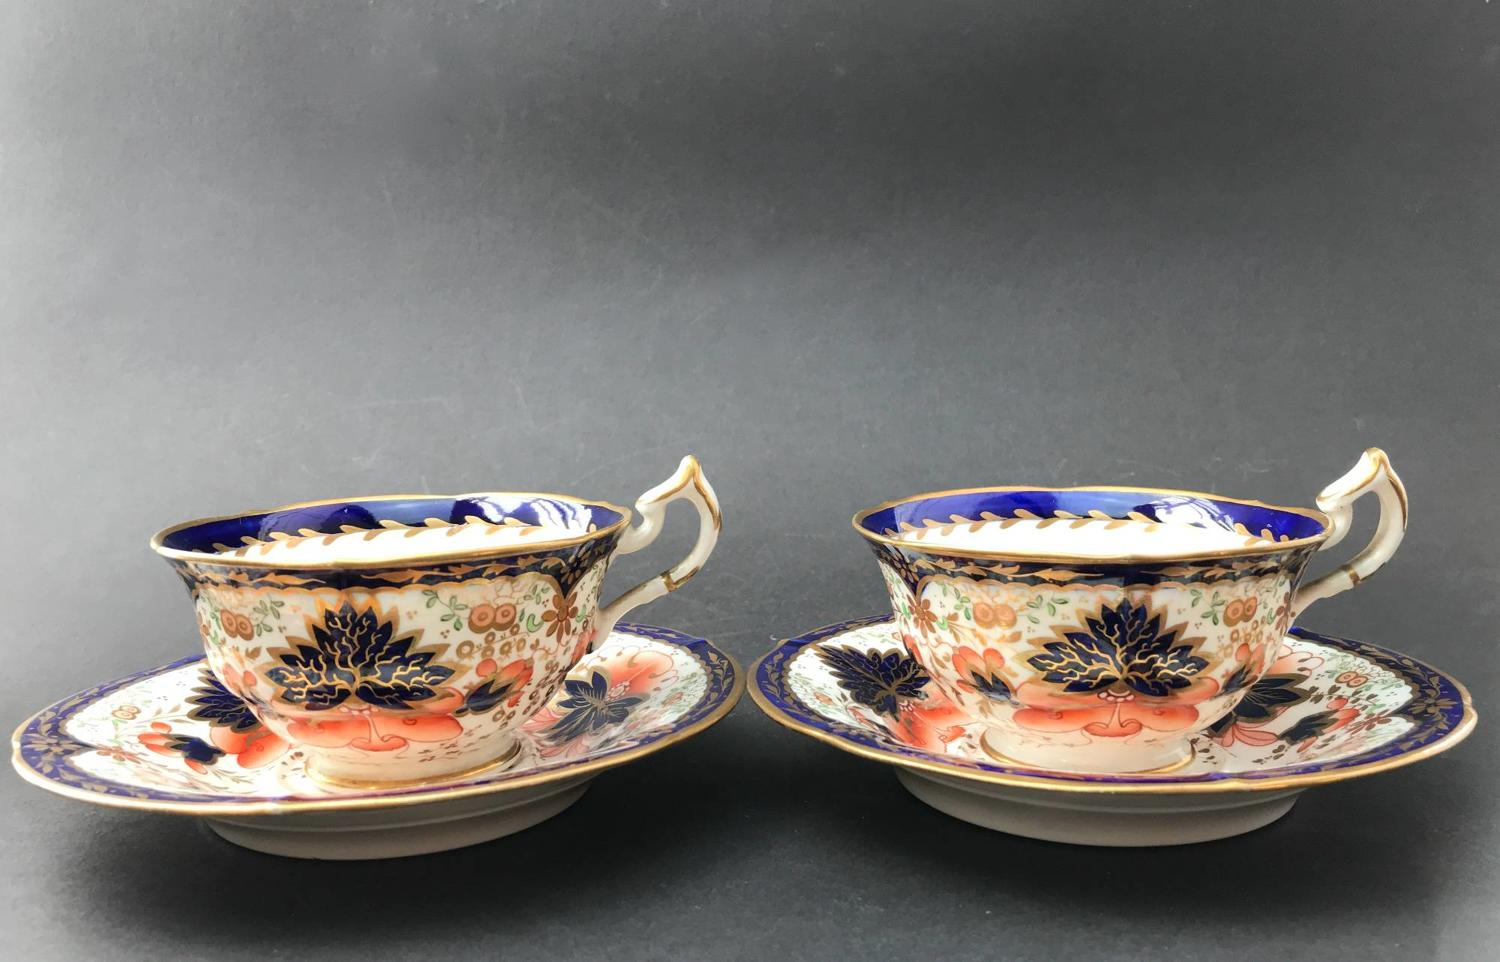 Pair of Staffordshire Porcelain Imari Pattern Tea Cups & Saucers